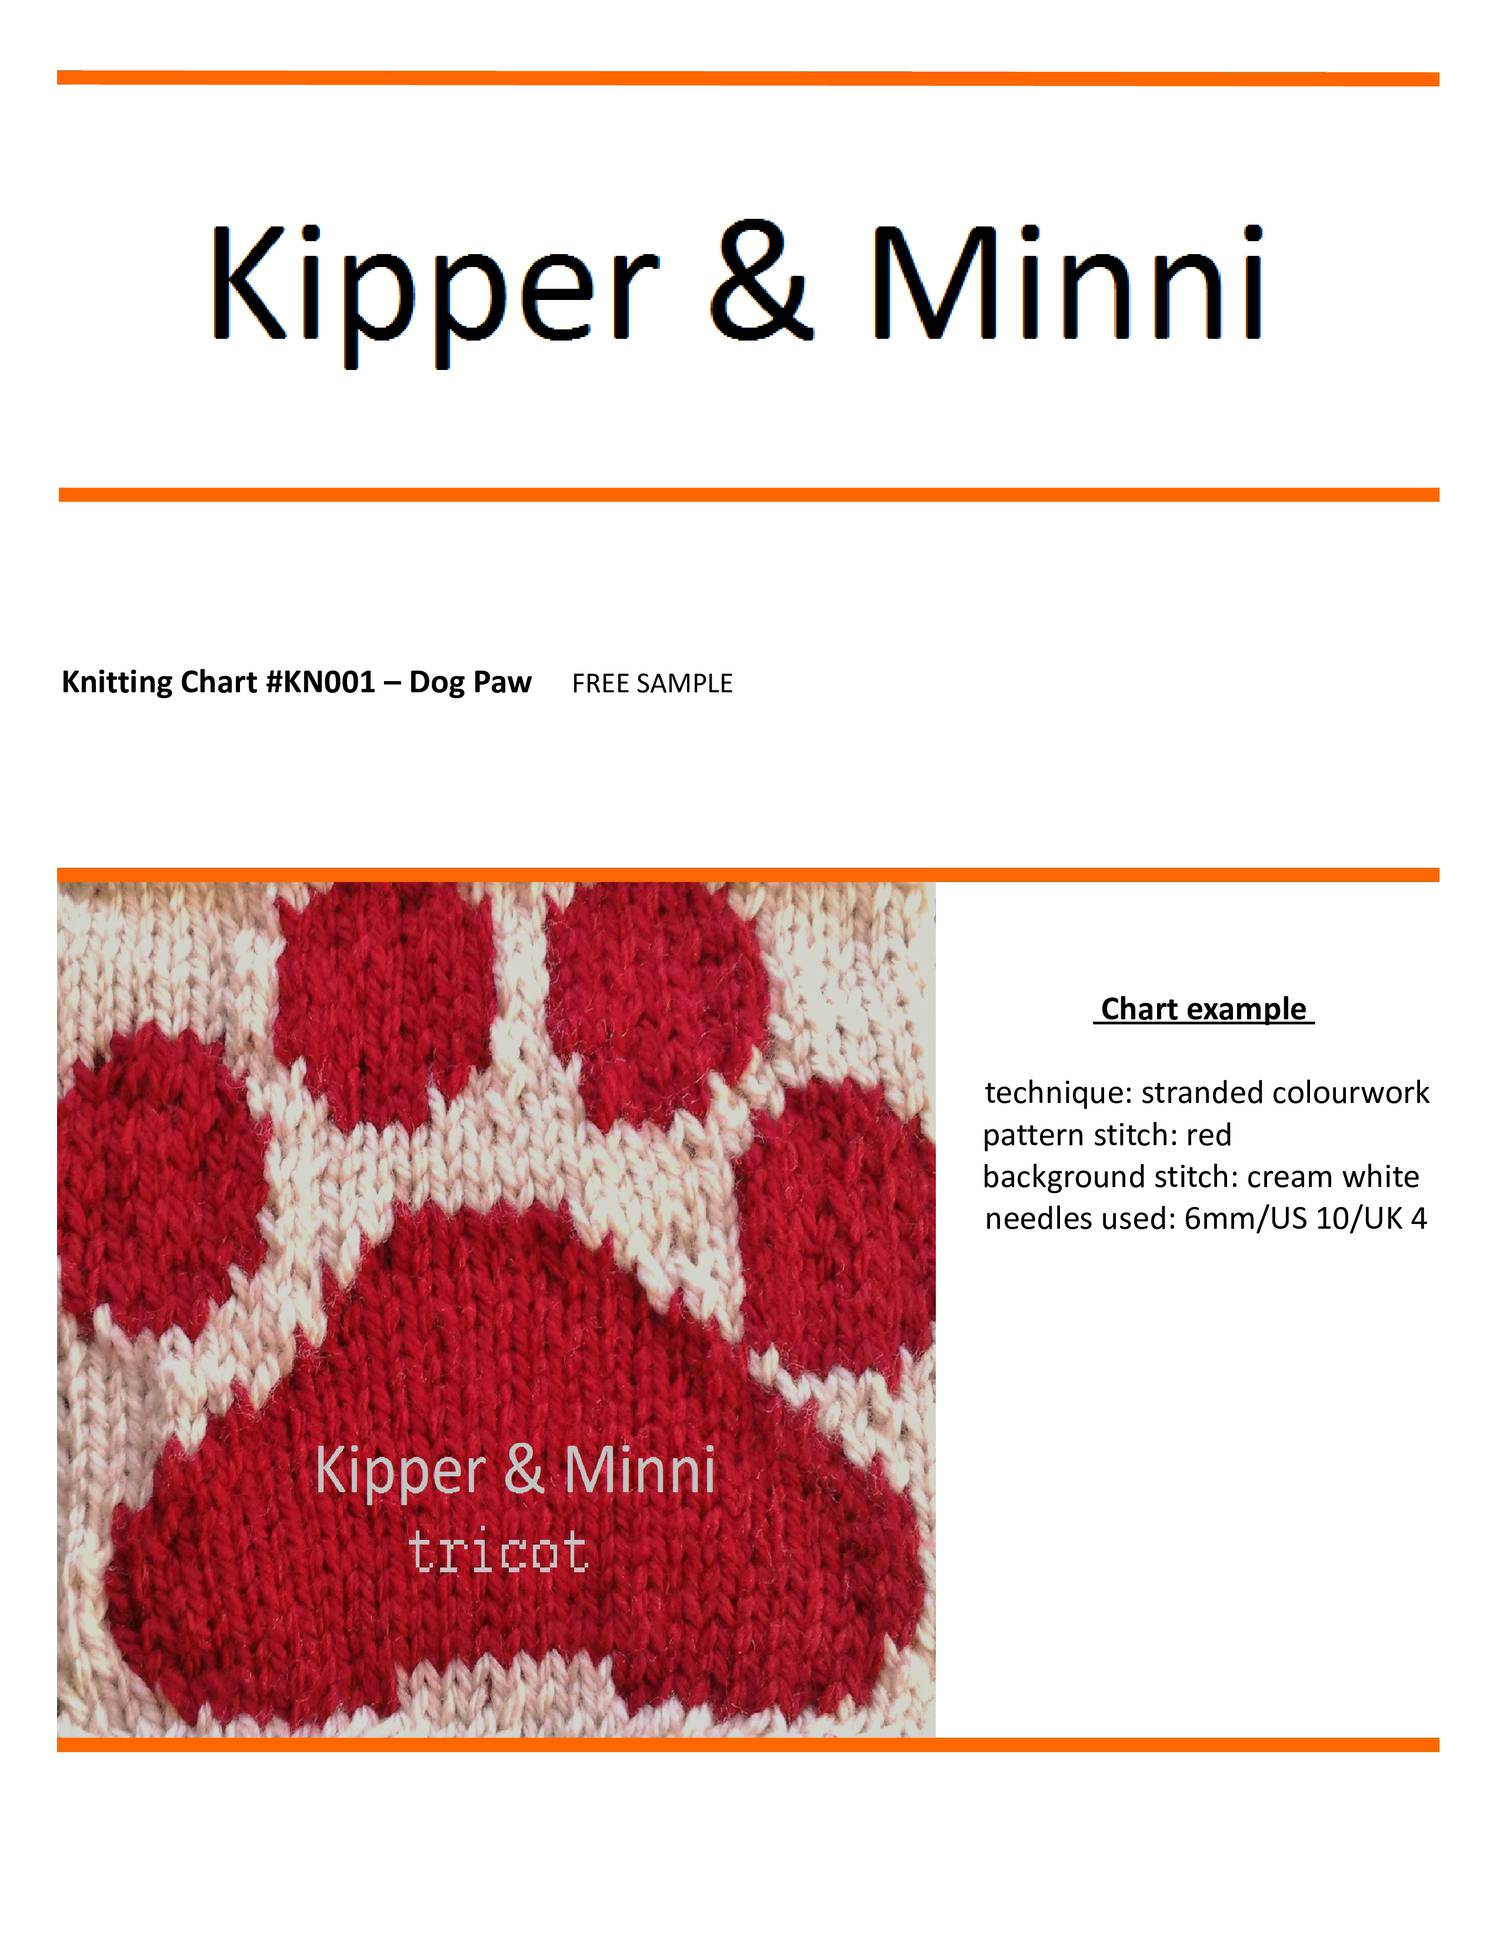 FREE knitting pattern - Dog Paw pdf | DocDroid